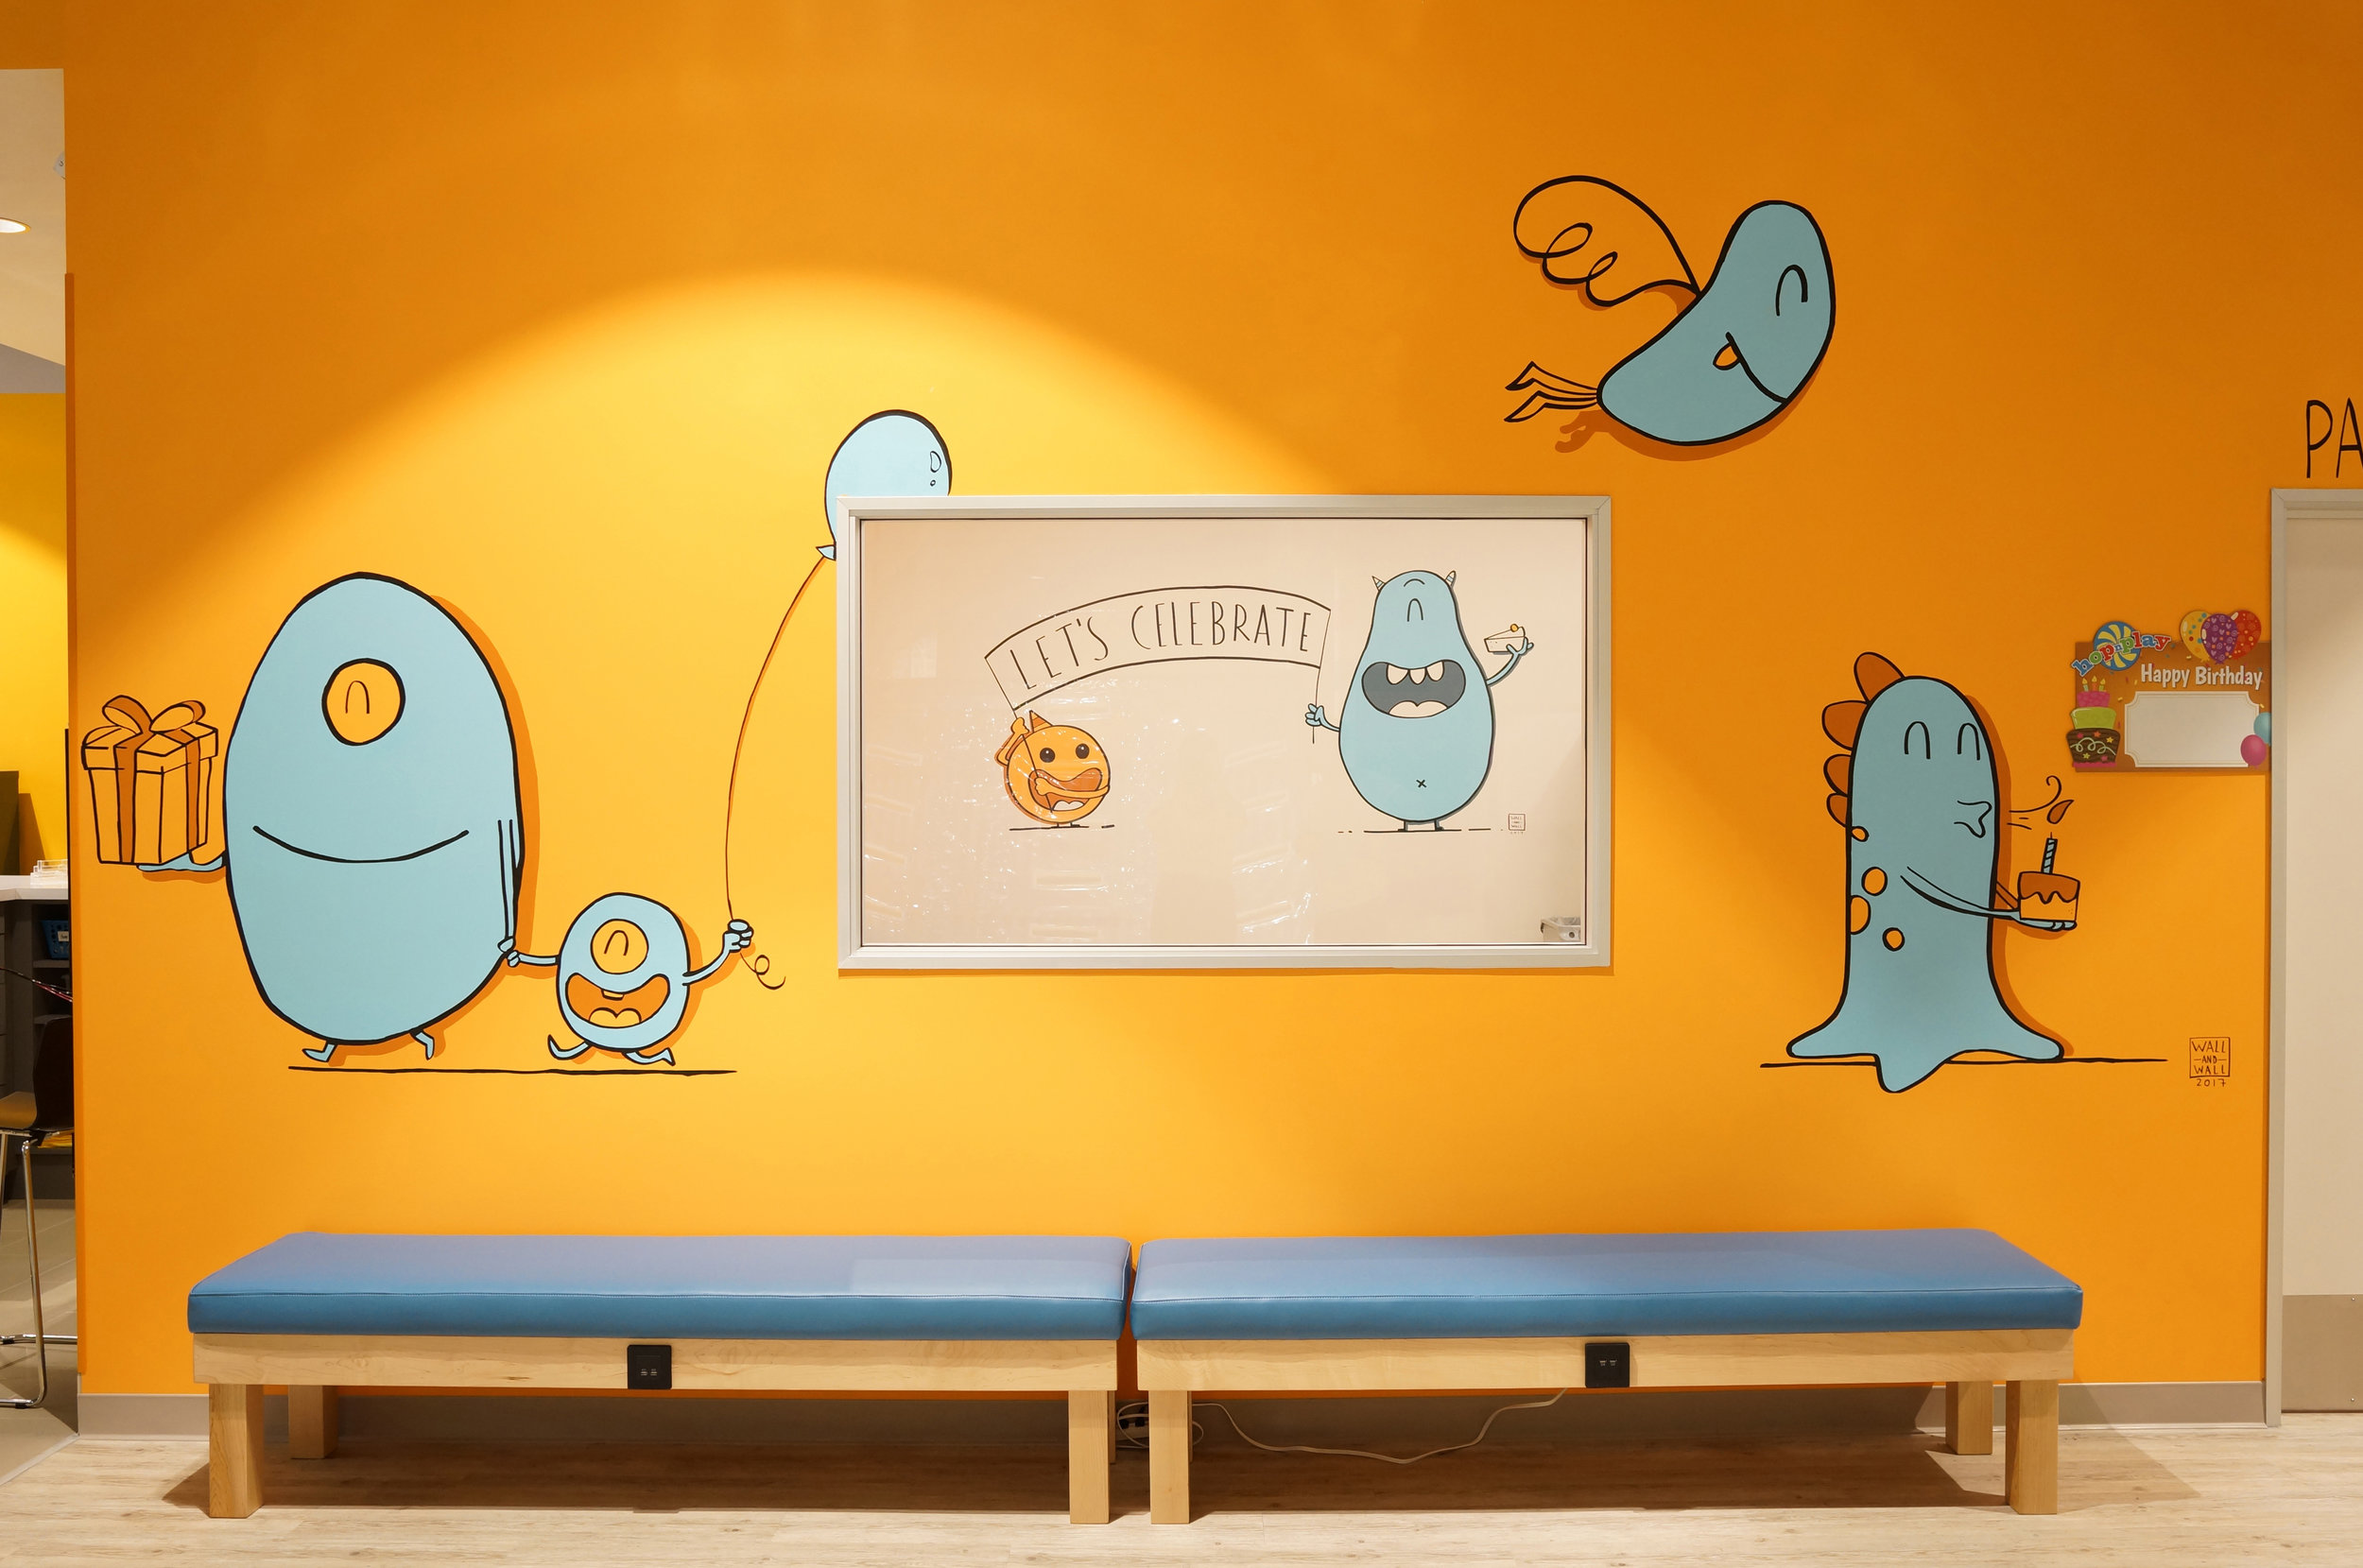 Office-commercial-mural-san-francisco-hop-n-play-wall-and-wall-mural-company_002.jpg